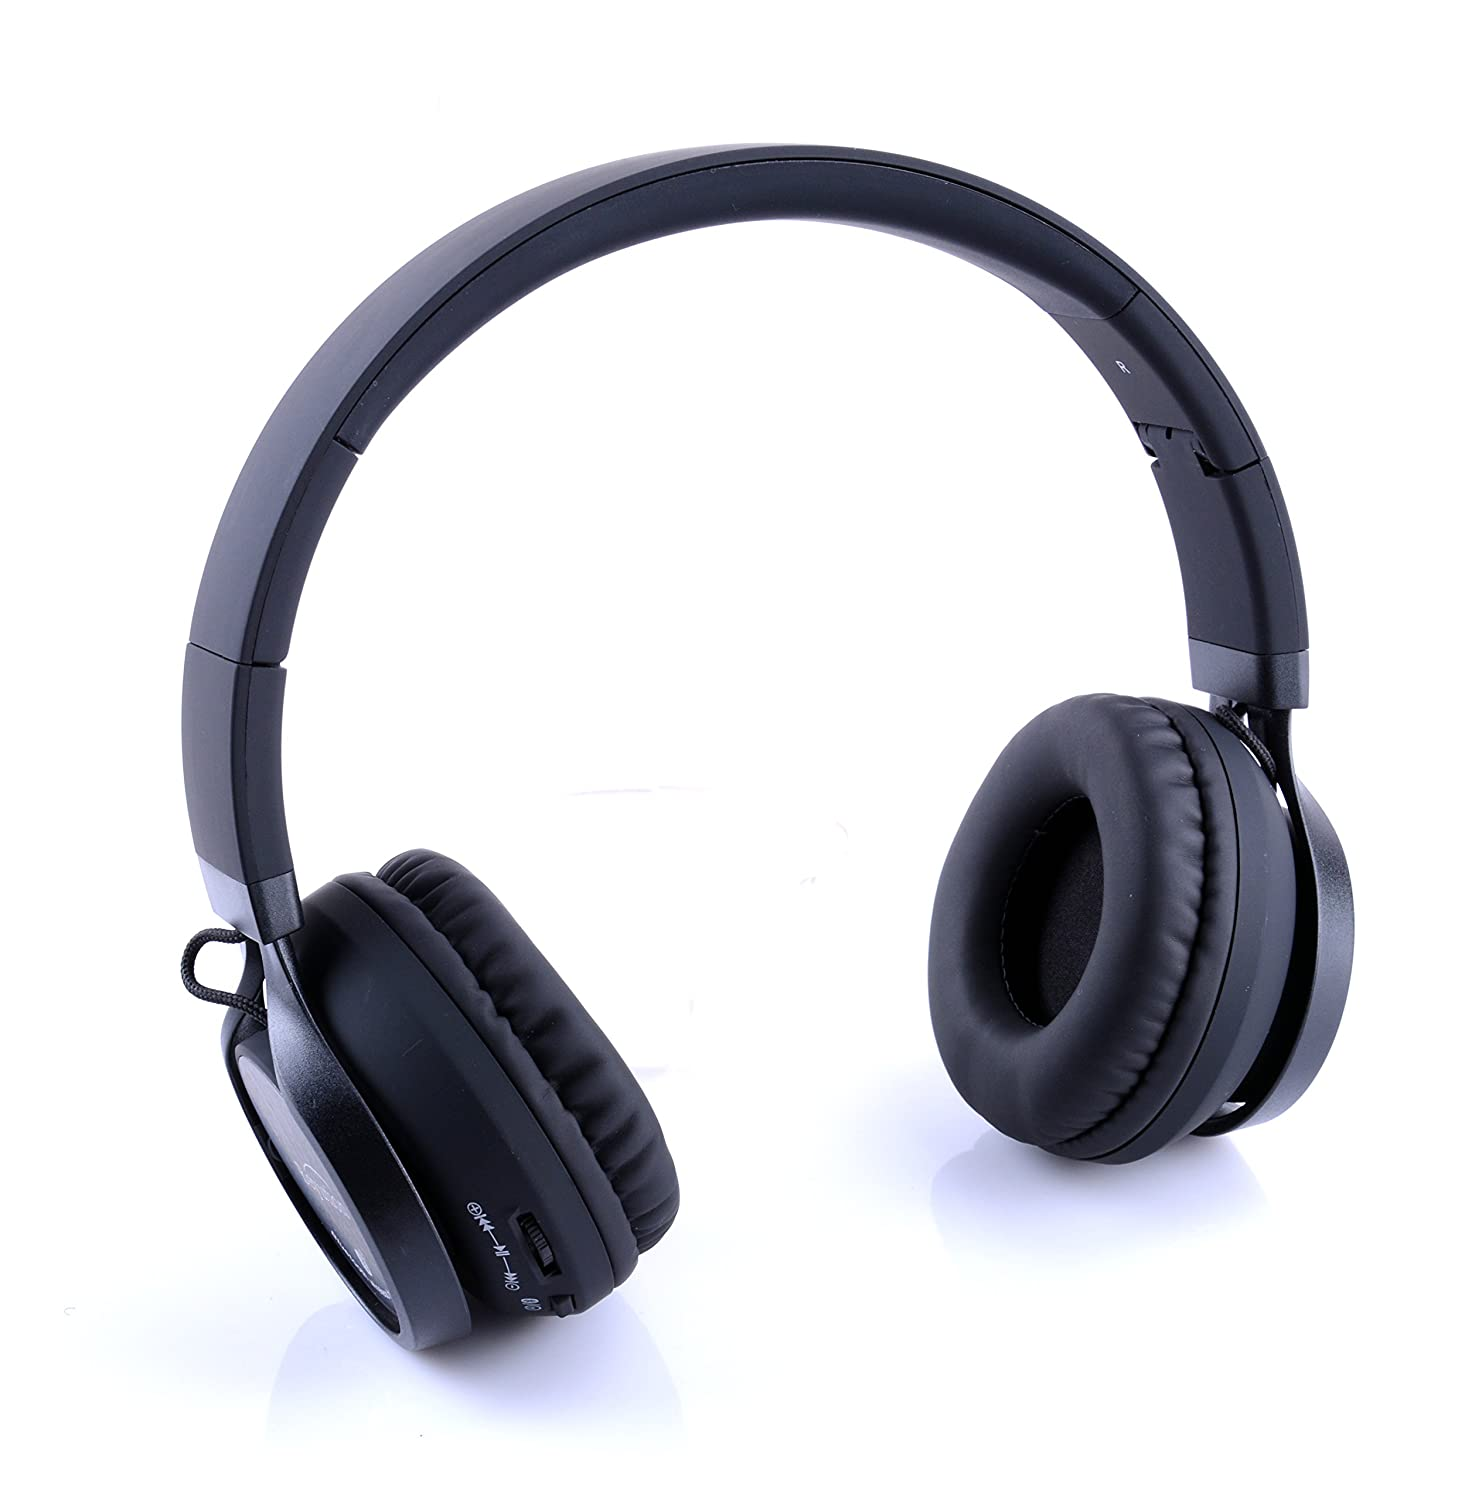 Beyution 525 Metal Bluetooth Headphones Hi-Fi Over-Ear Stereo Bluetooth Headphones Built in Mic-Phone Talk with Phone or Listen Music Clearly, Built Noise Cancellation Technology with Retail Package